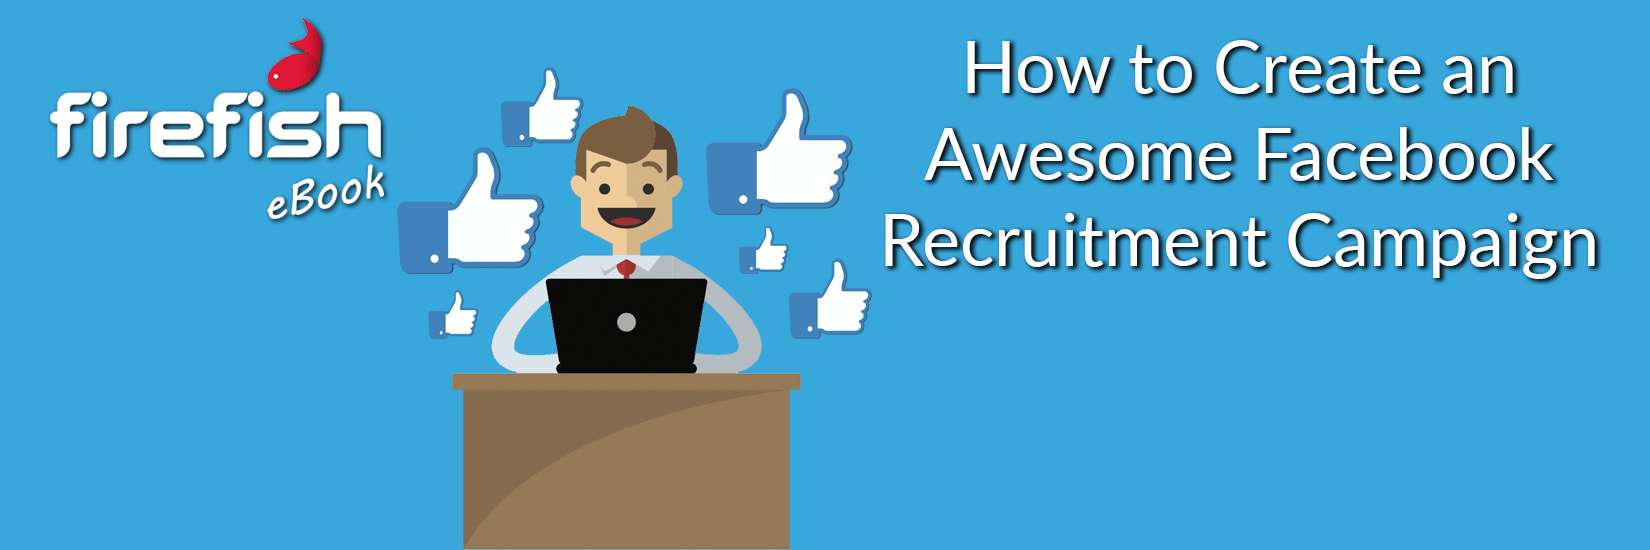 How to Create an Awesome Facebook Recruitment Campaign